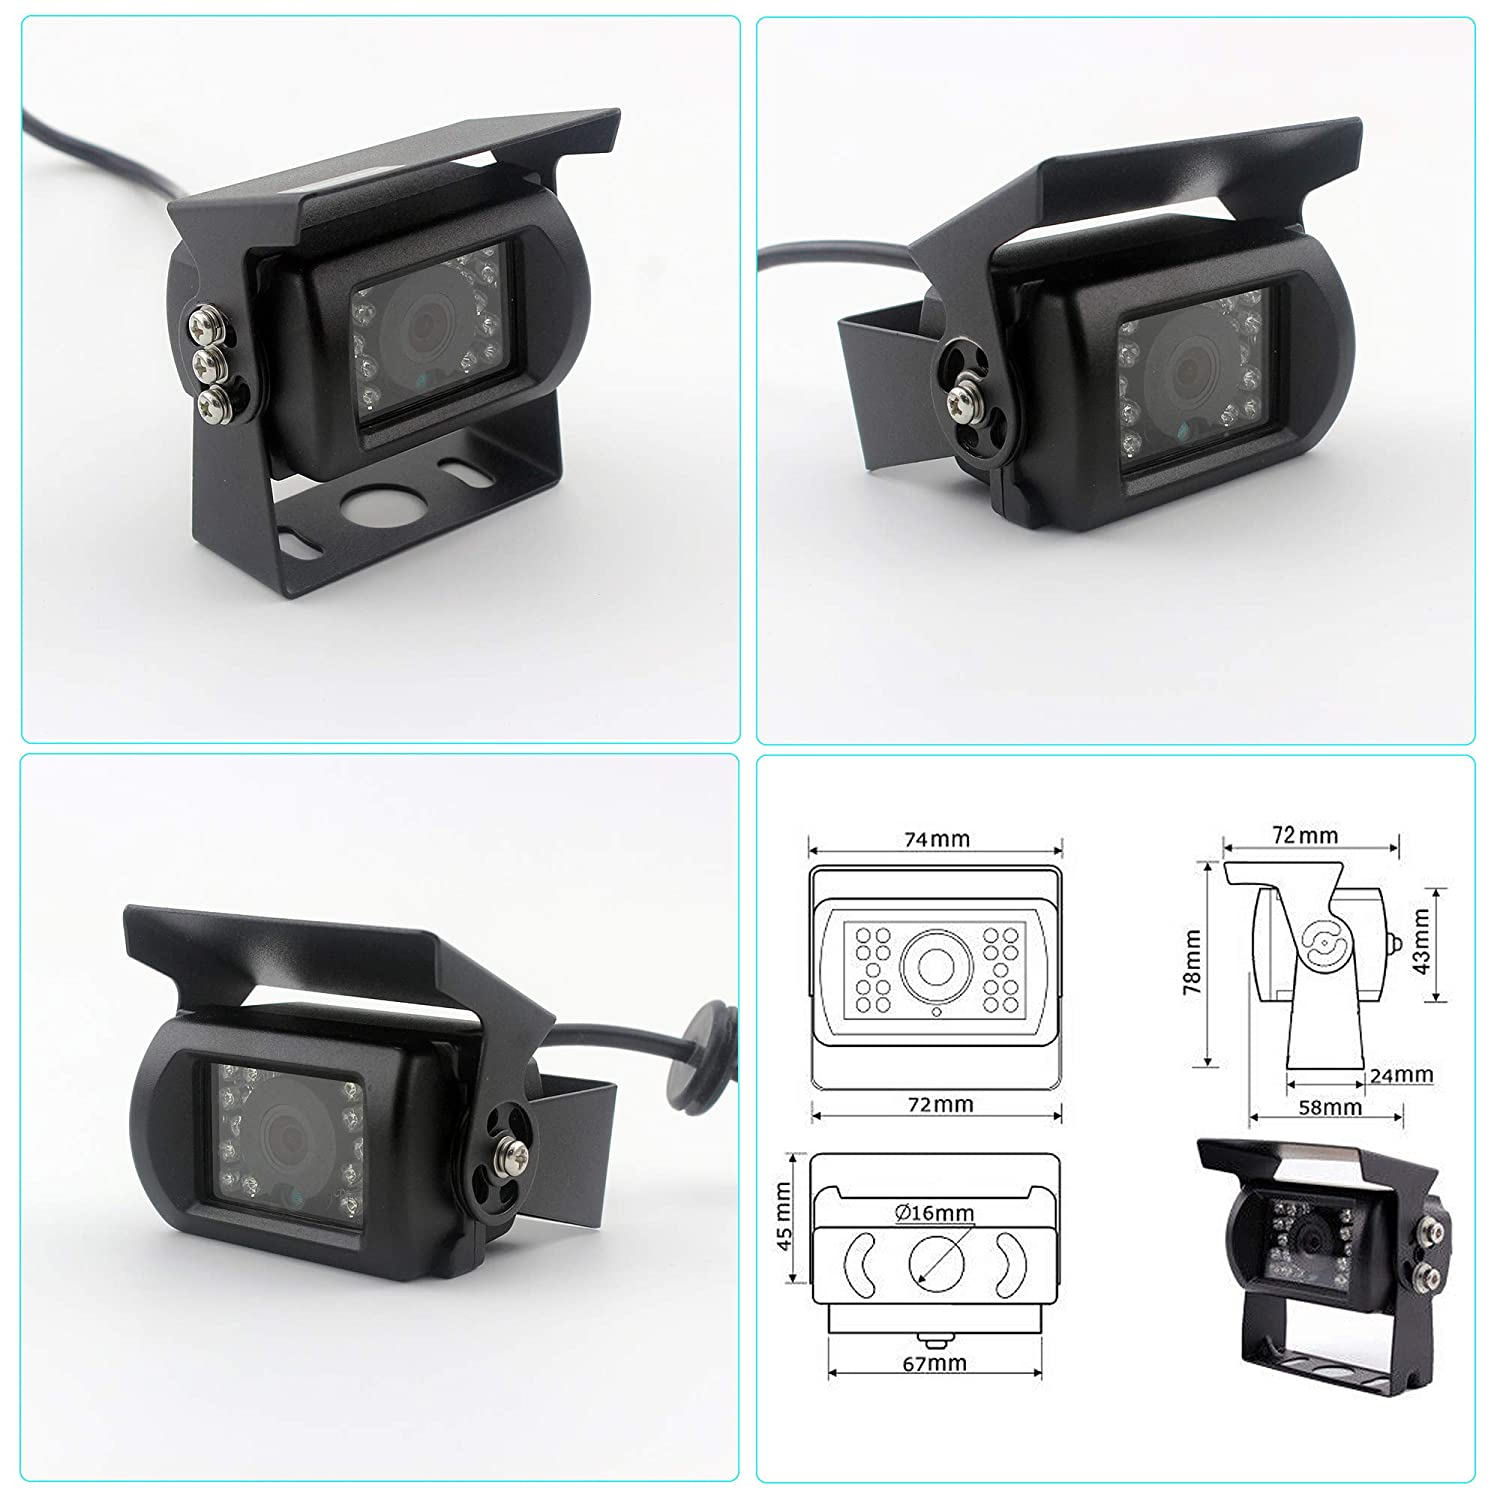 LTD CL9D129 CAMSLEAD Car Backup Camera System 9 Monitor Built-in DVR Recorder with Quad Split Screen CCD Waterproof Night Vision Side Camera Rear View Camera Monitor Kit for Truck Van Caravan Trailers Camper RV Guangzhou Zhiren Electronic Co